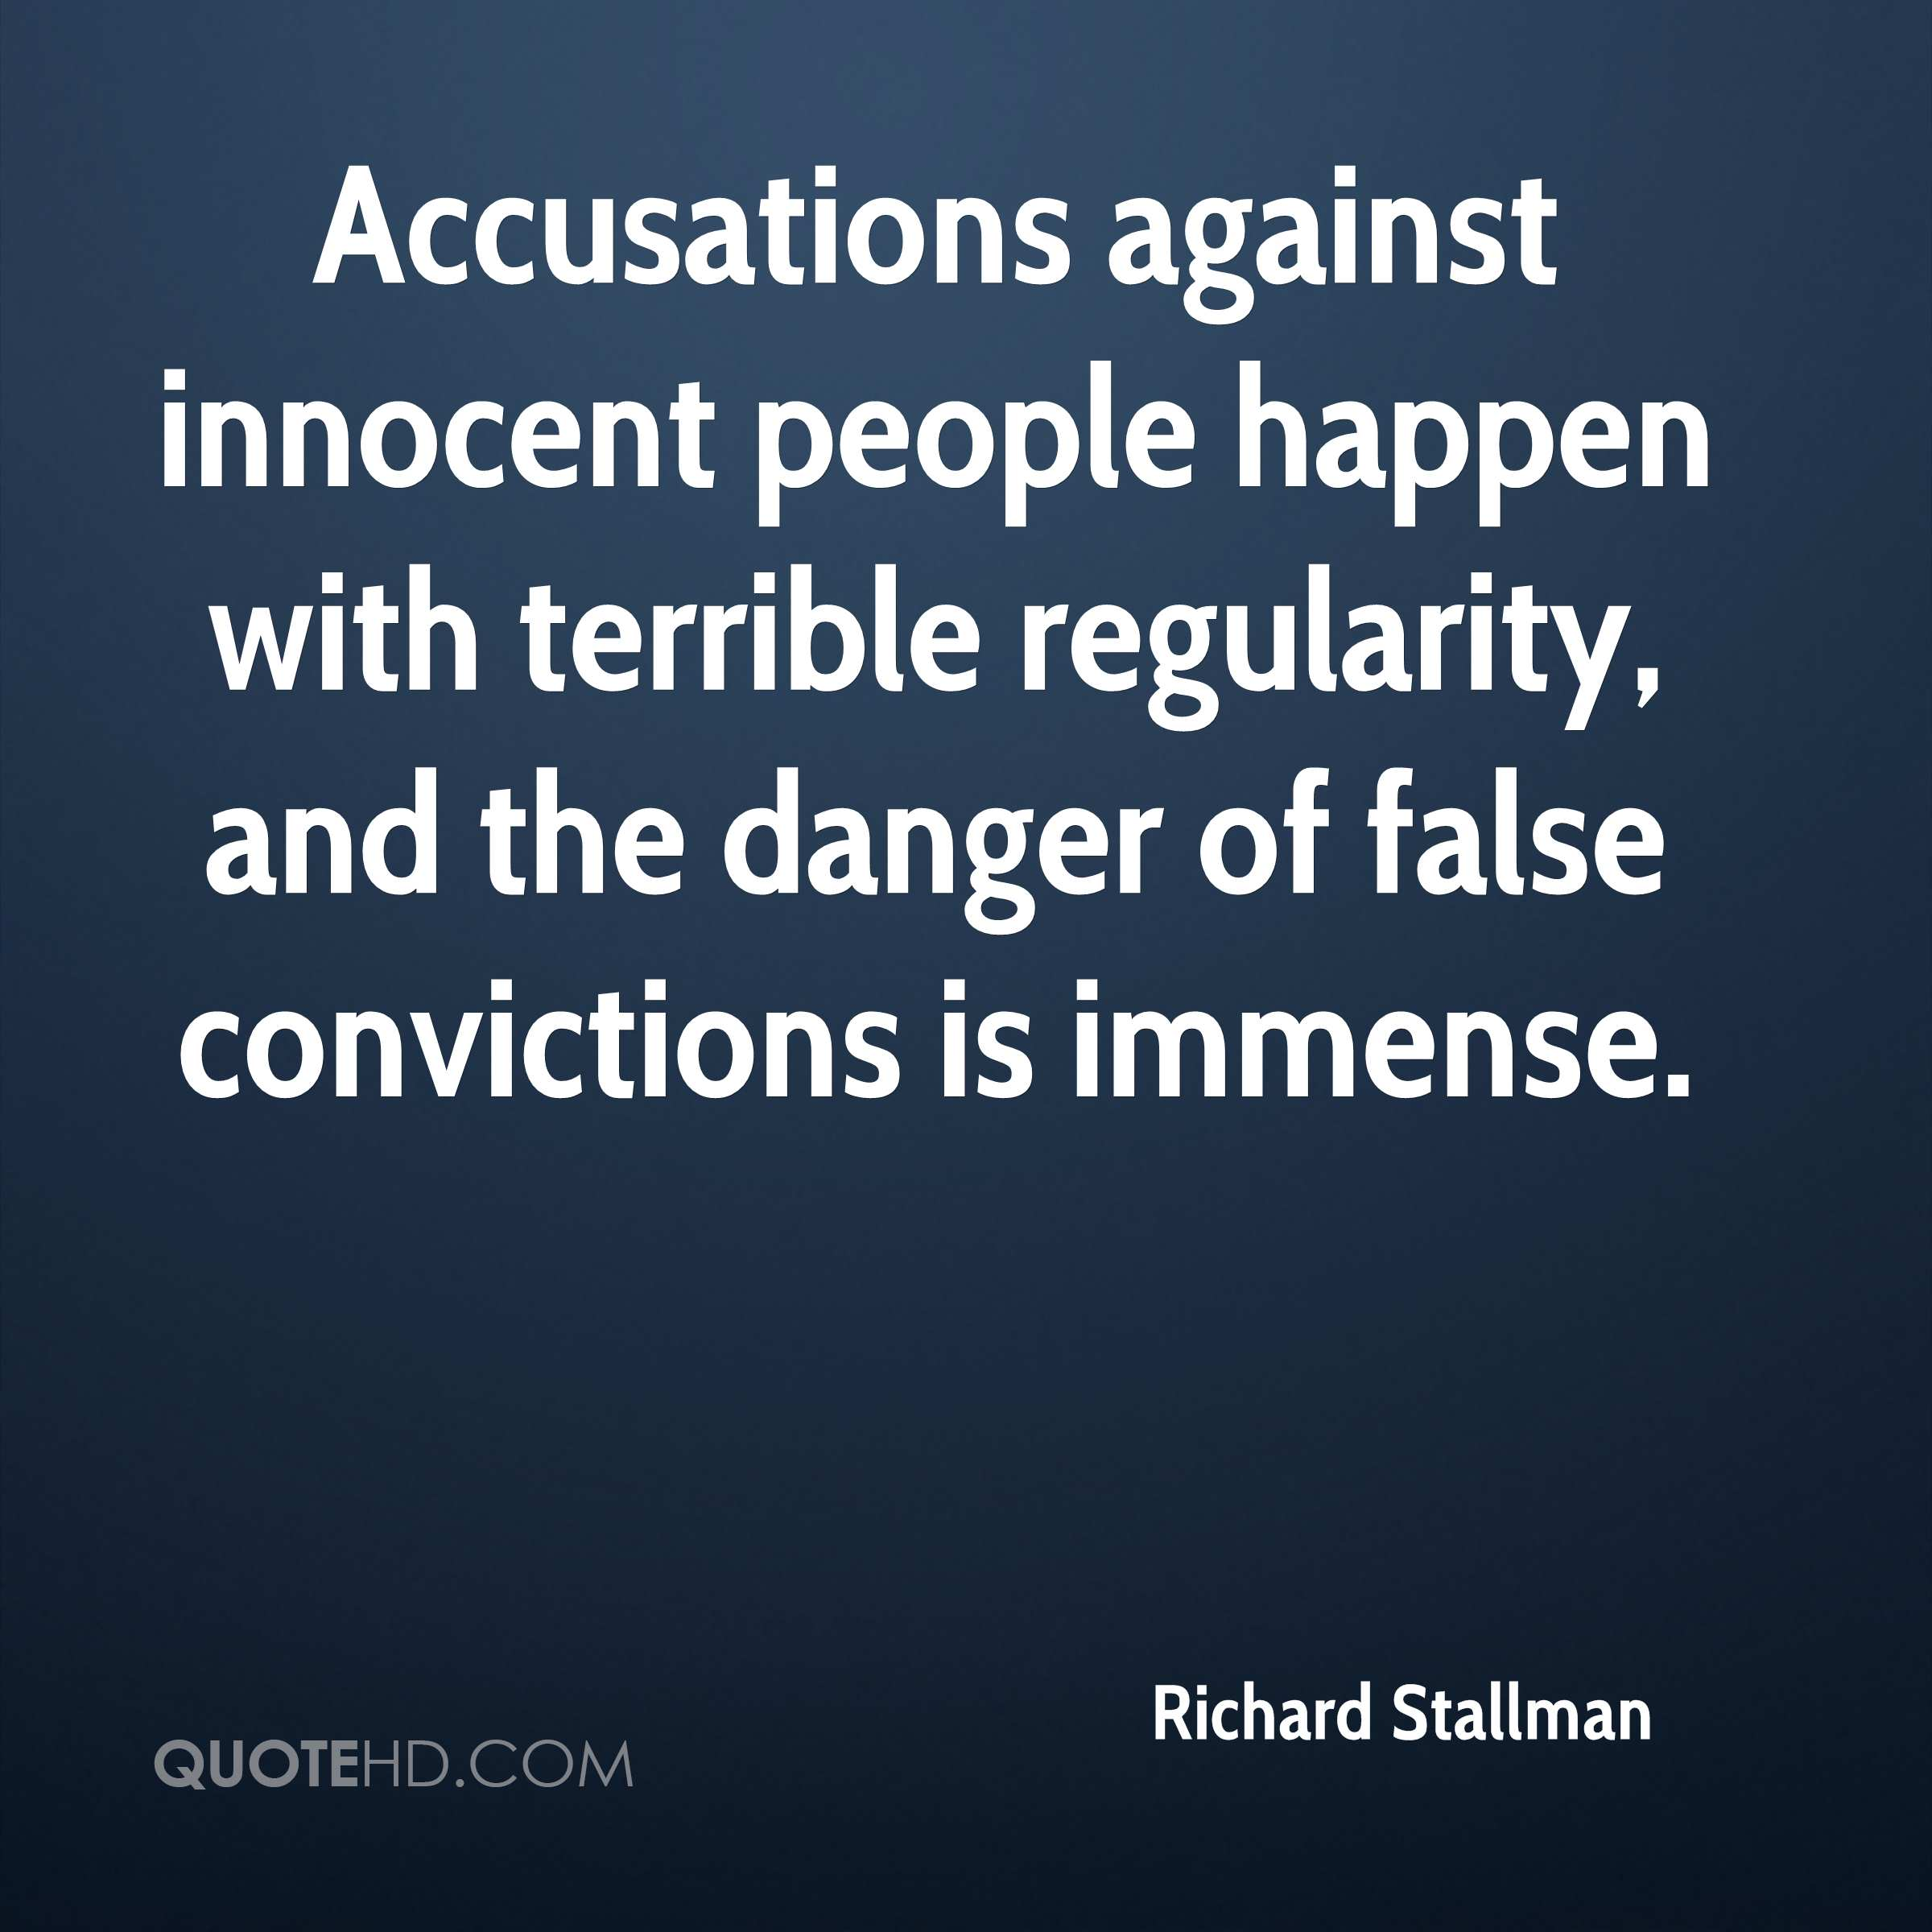 Accusations against innocent people happen with terrible regularity, and the danger of false convictions is immense.